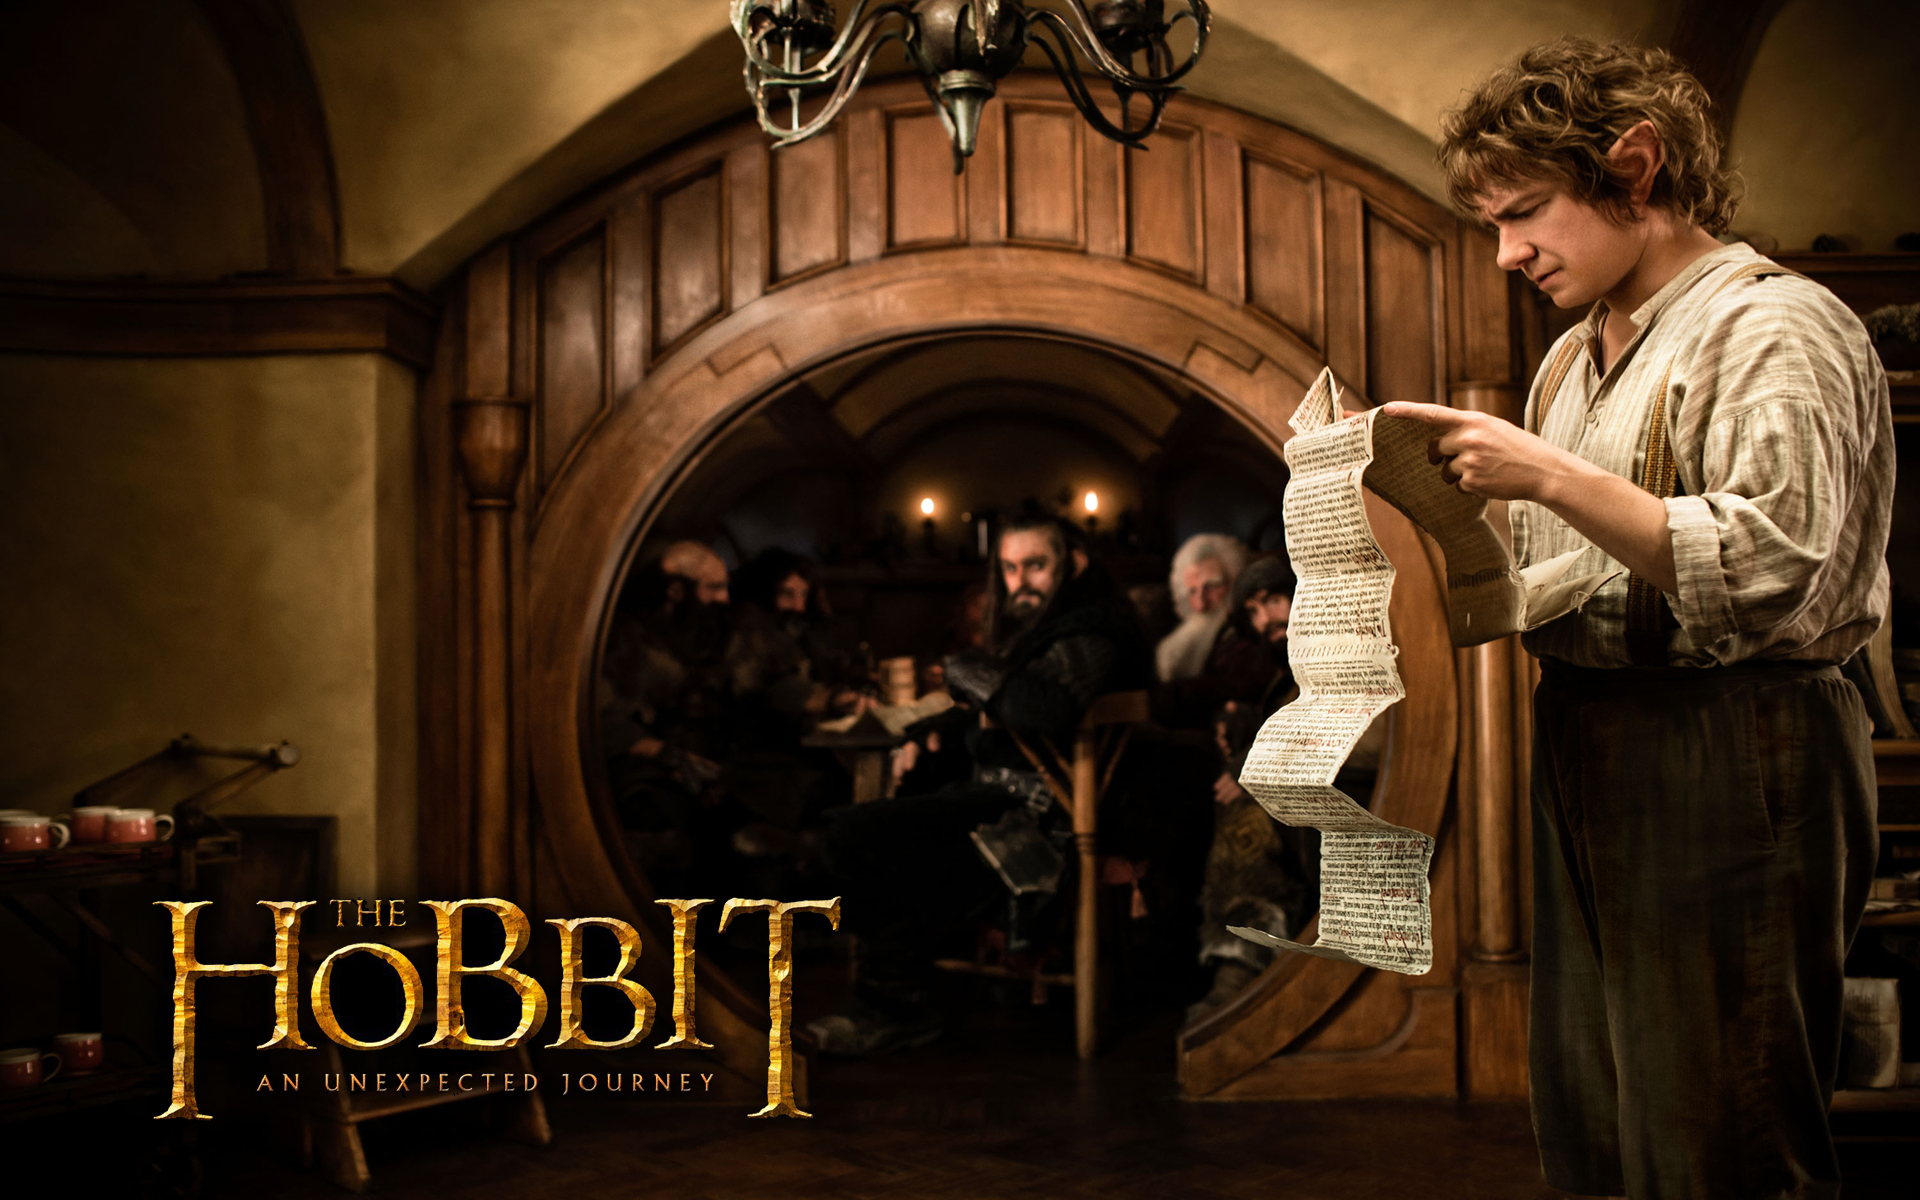 The-Hobbit-An-Unexpected-Journey-Wallpapers-4.jpg